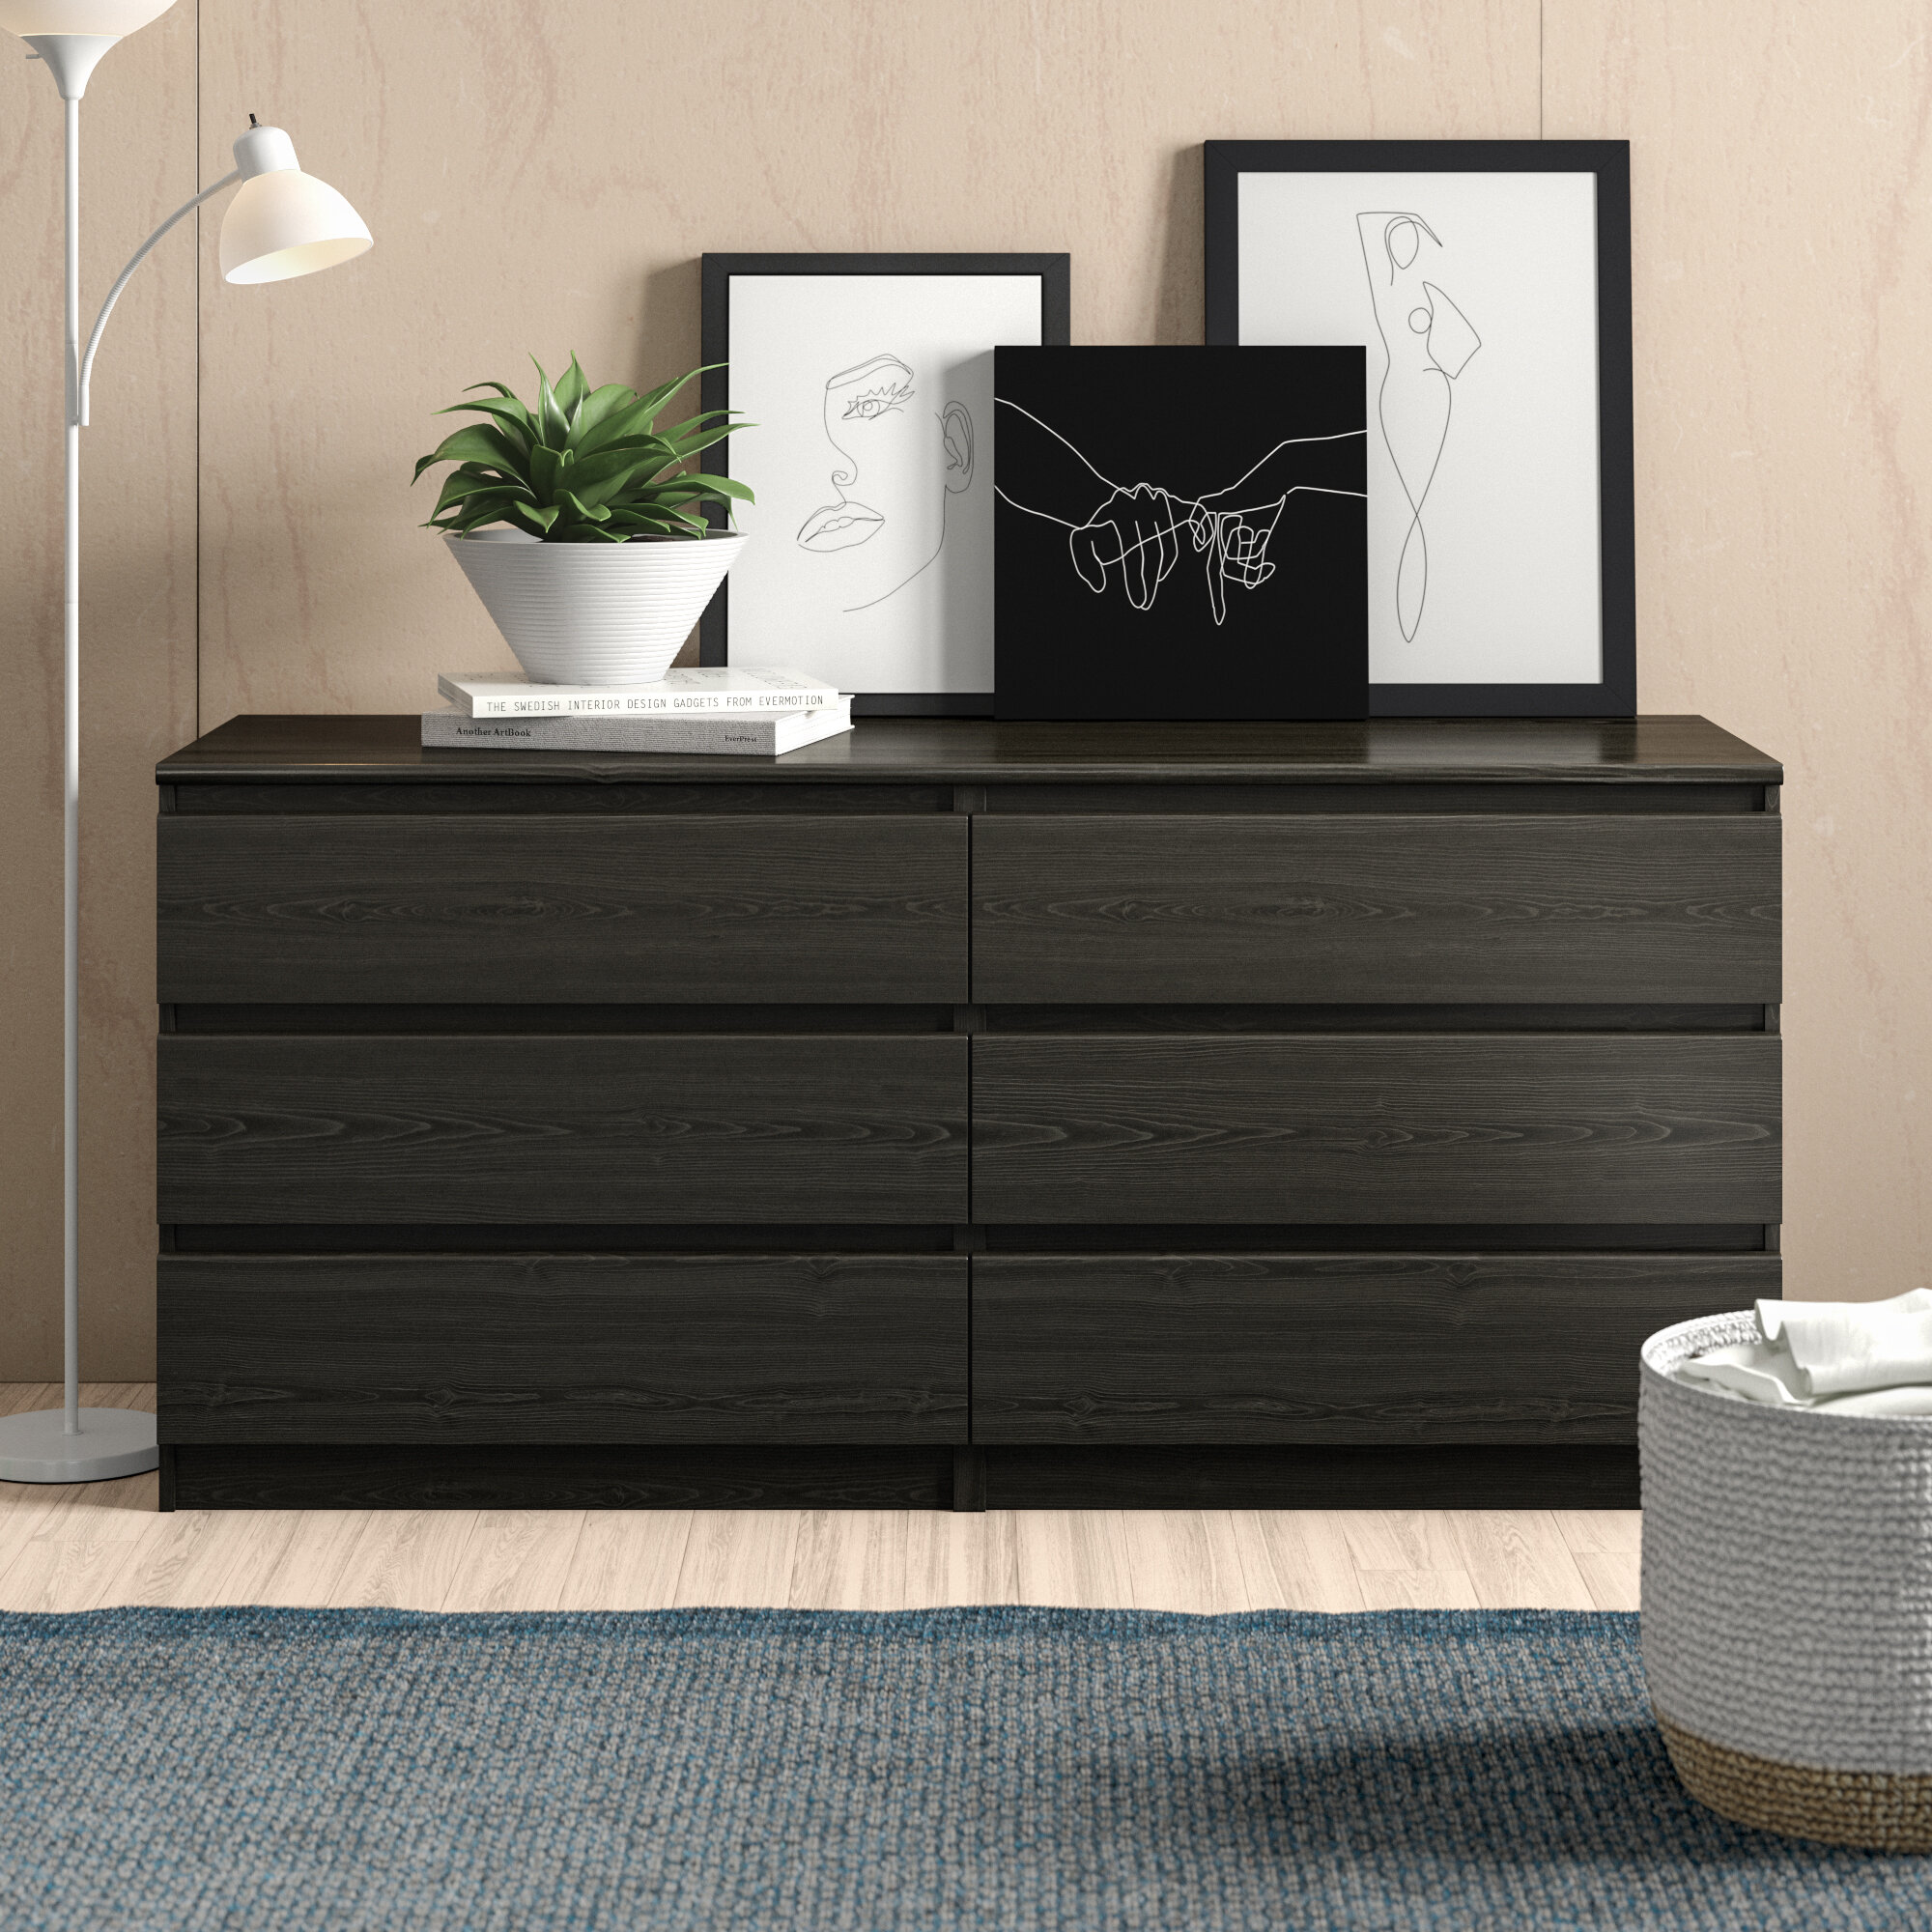 Diffe Types Of Dressers Chests